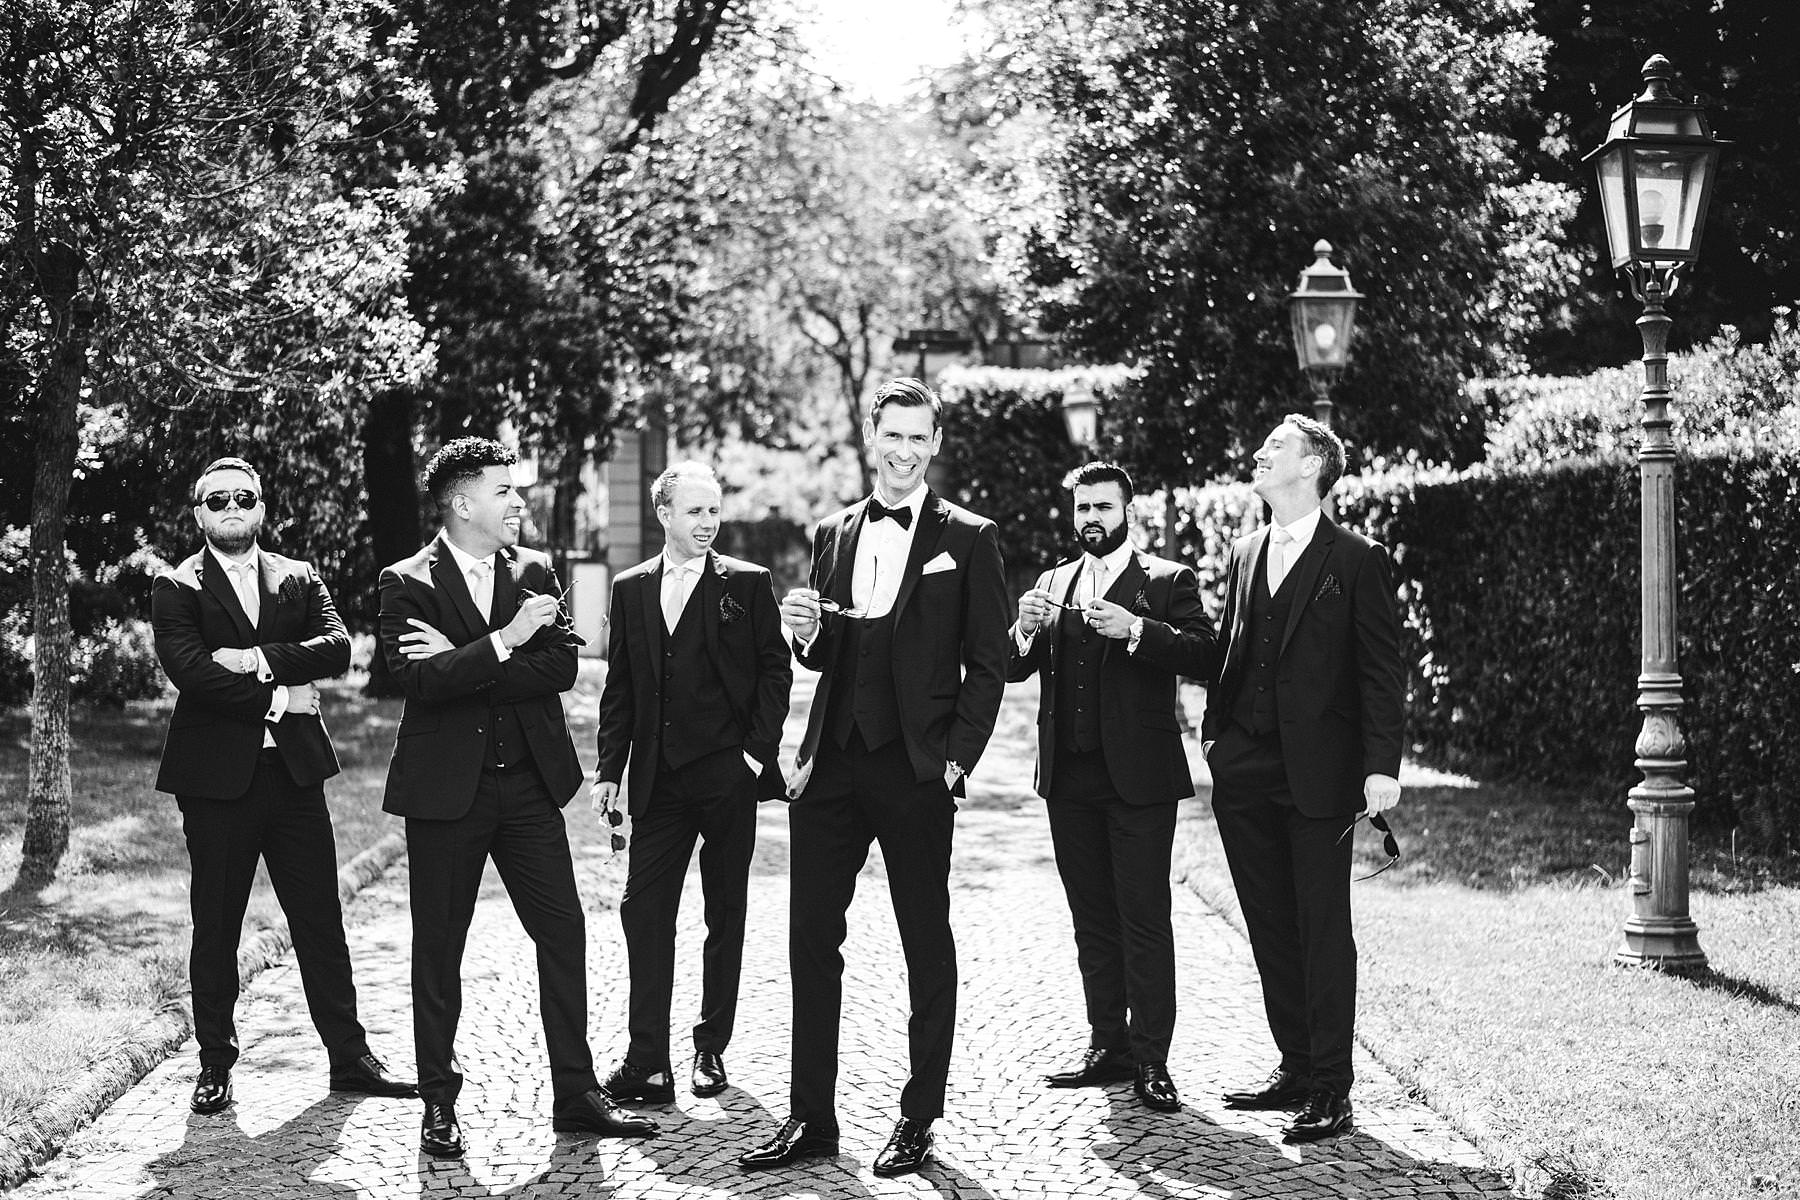 Groom Cheyne with groomsmen at Villa La Vedetta, Florence just before the wedding ceremony in the park of the Villa